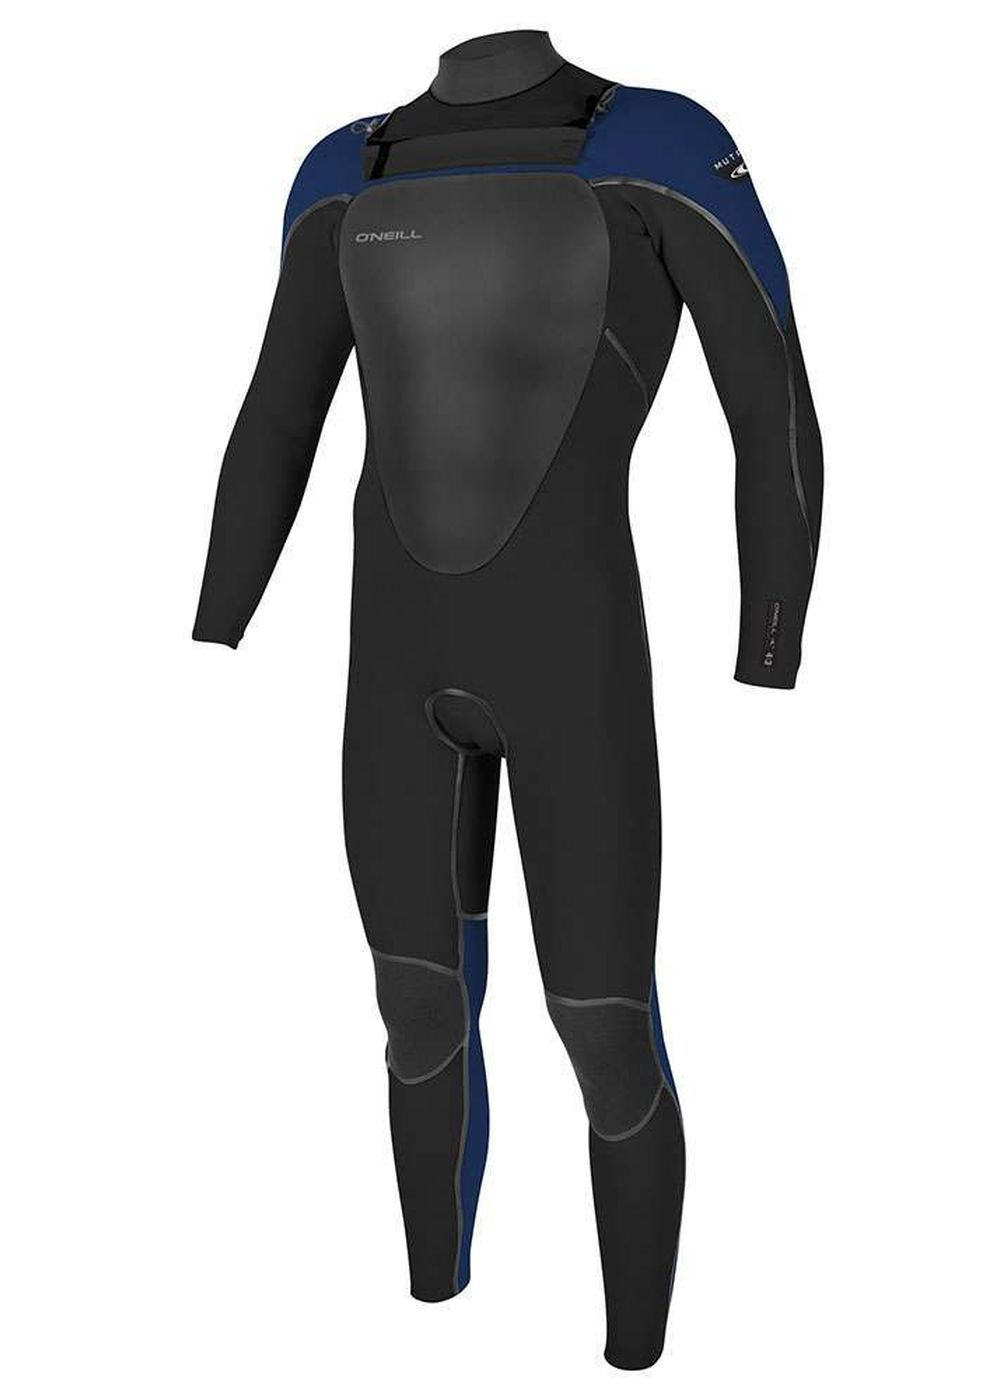 Oneill Mutant Fz 5/4 Wetsuit 2018 Black/navy Picture